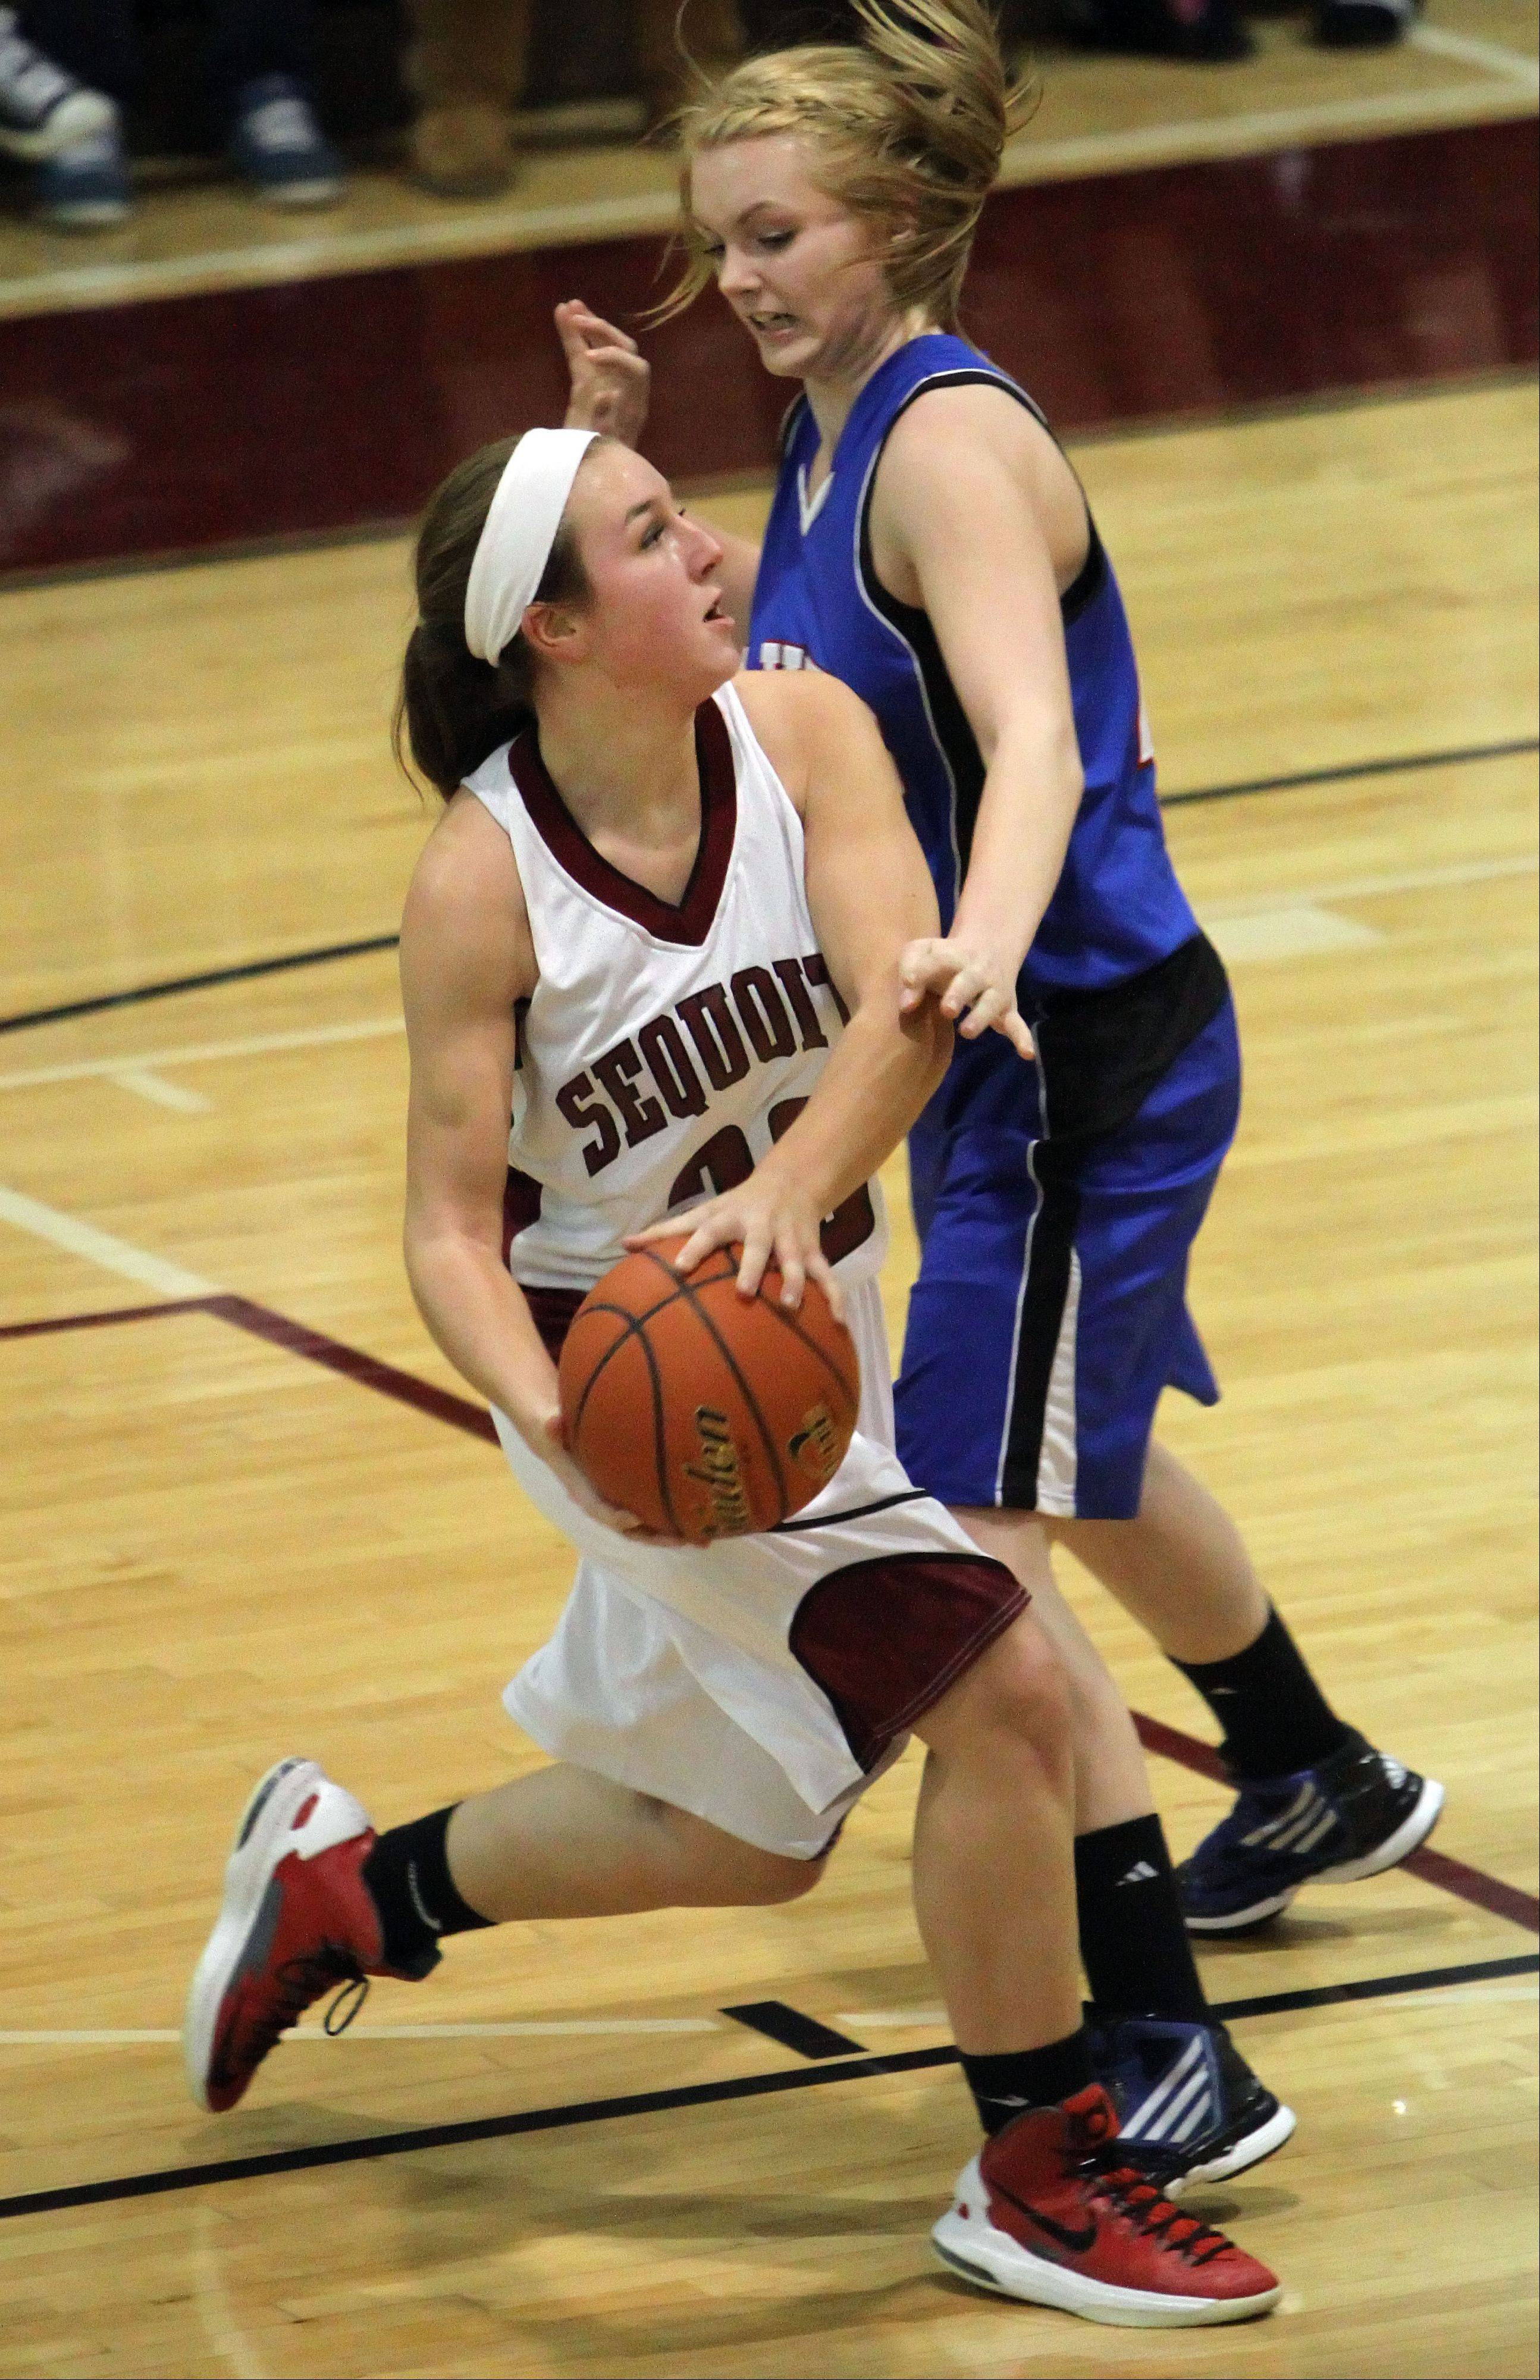 Antioch senior guard Paige Gallimore is scoring nearly 24 points per game for the 9-3 Sequoits.